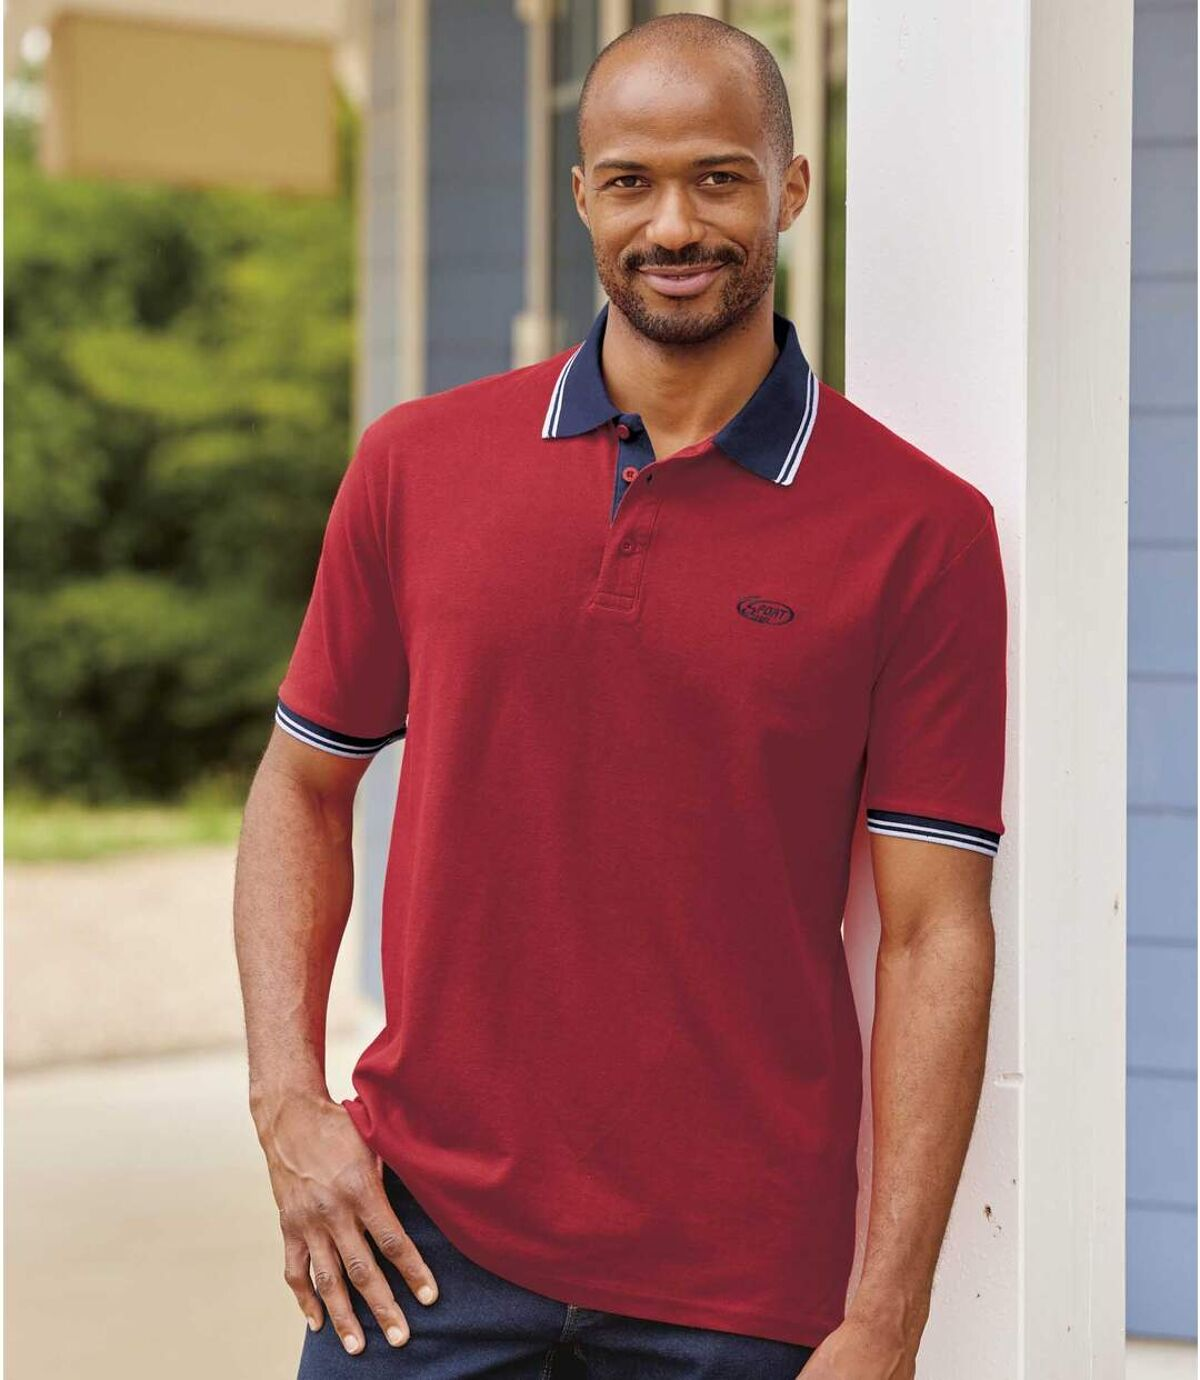 Pack of 2 Men's Piqué Fabric Polo Shirts - Navy, Red Atlas For Men